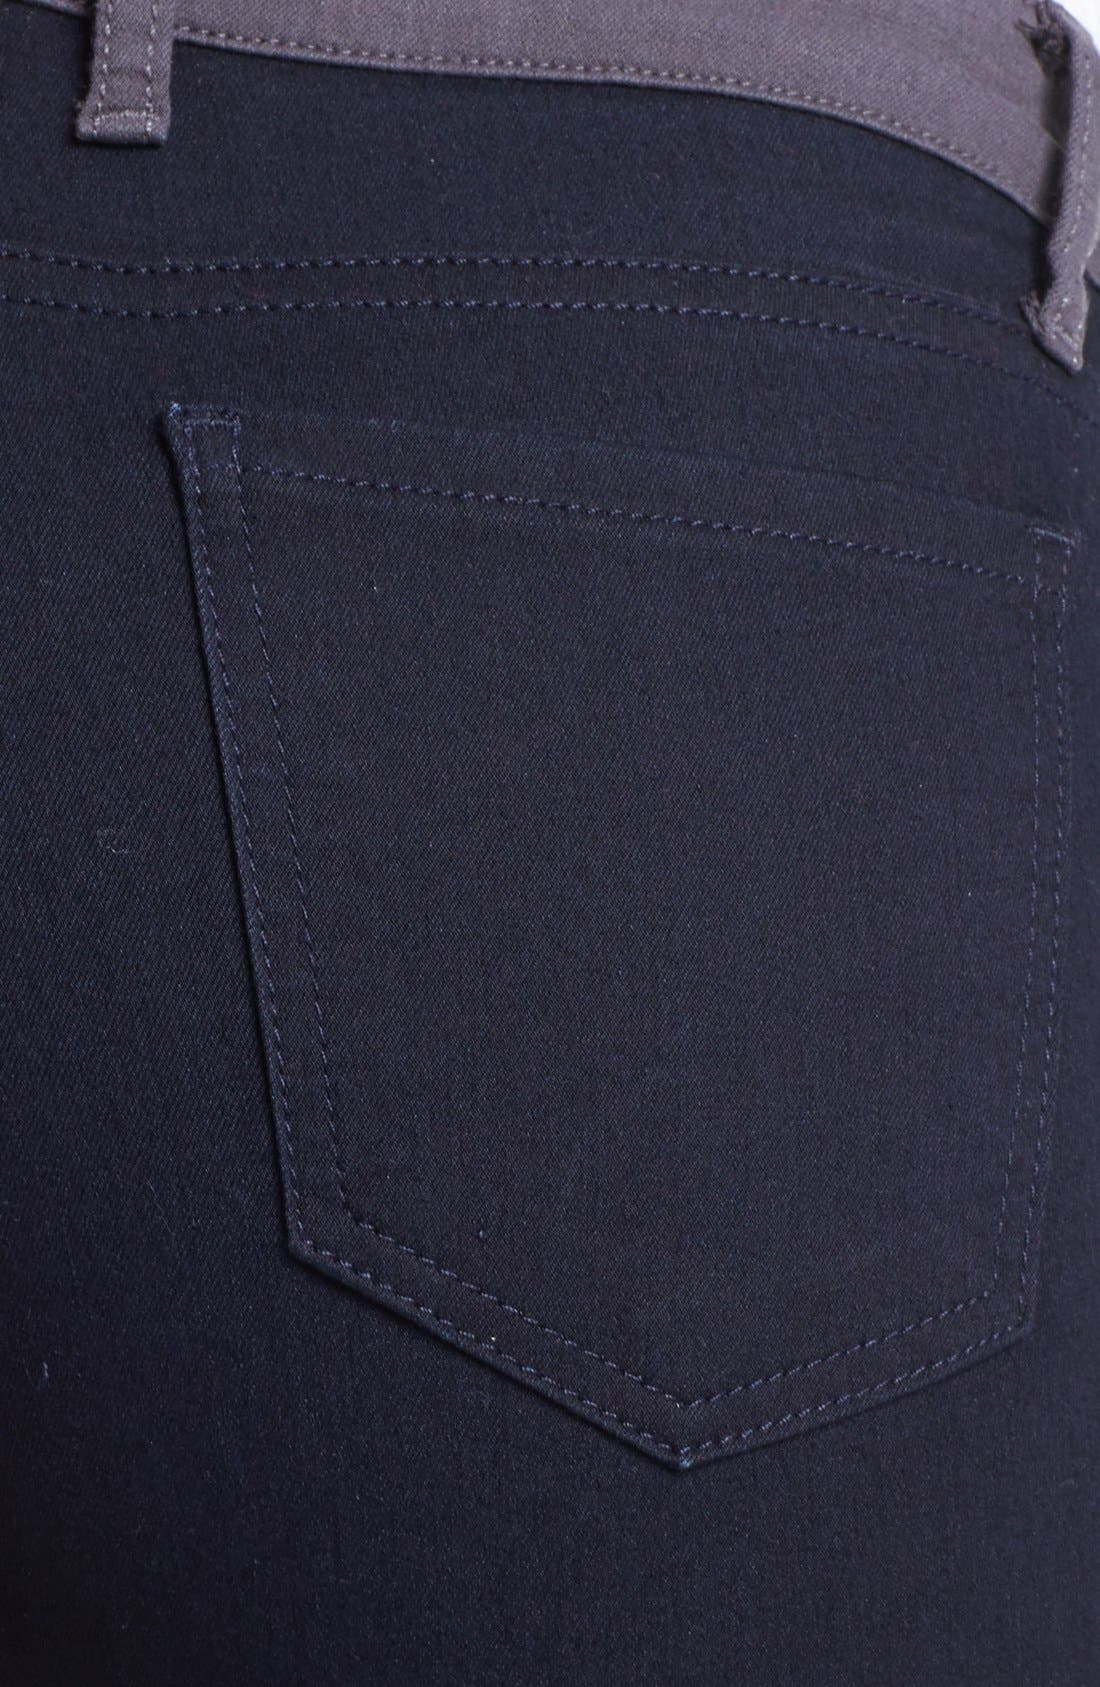 Alternate Image 3  - KUT from the Kloth Colorblock Skinny Jeans